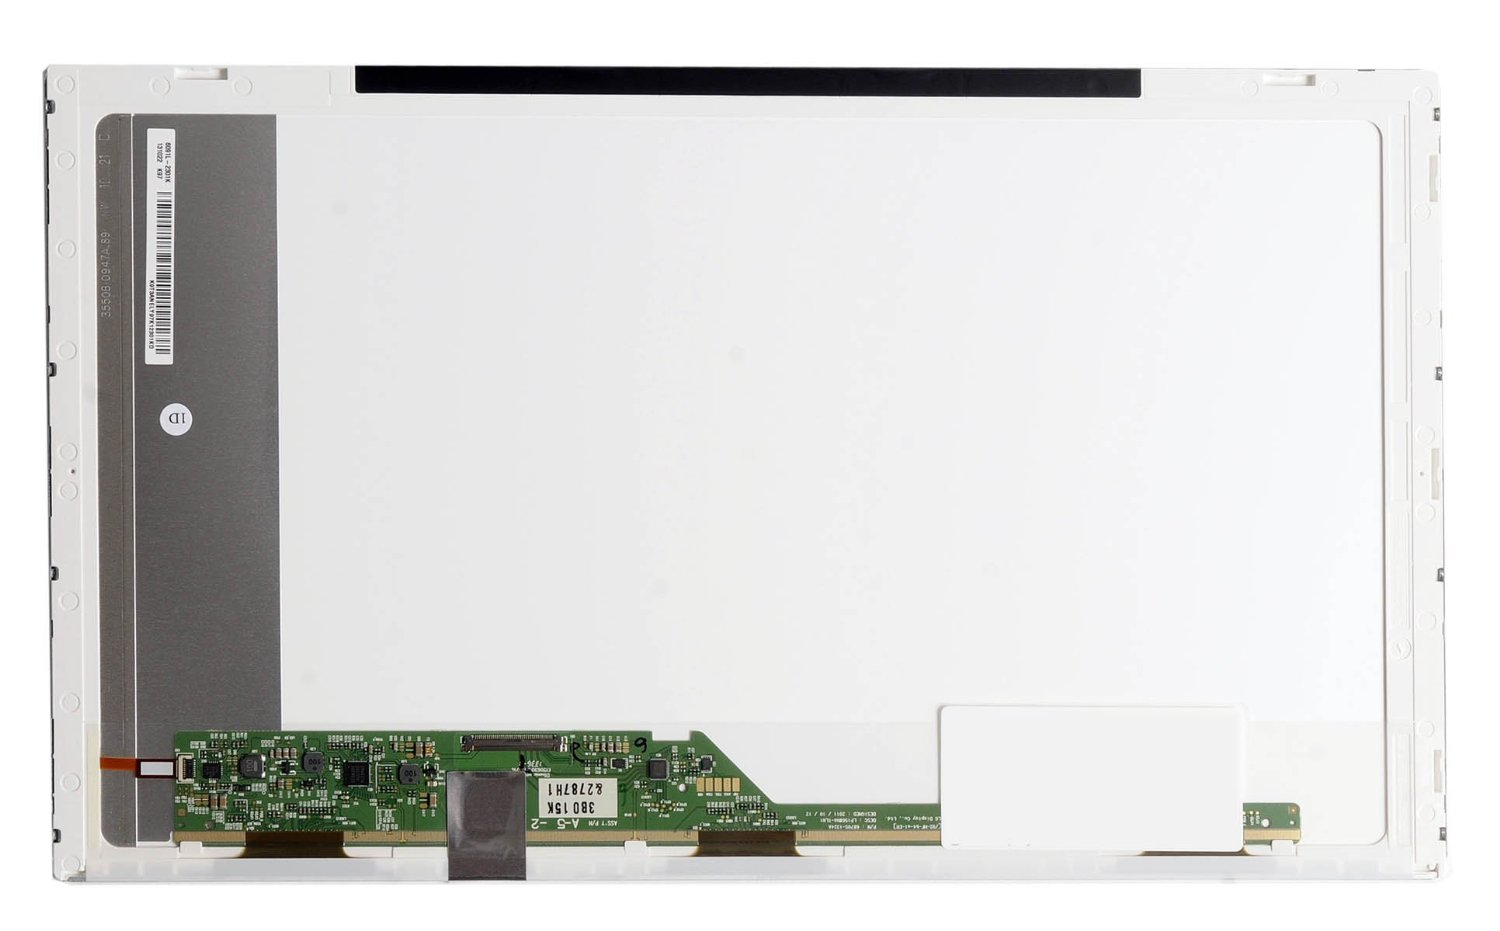 ФОТО QuYing Laptop LCD Screen for Toshiba Satellite C855-S5233 (15.6 inch 1366x768 40pin TK)